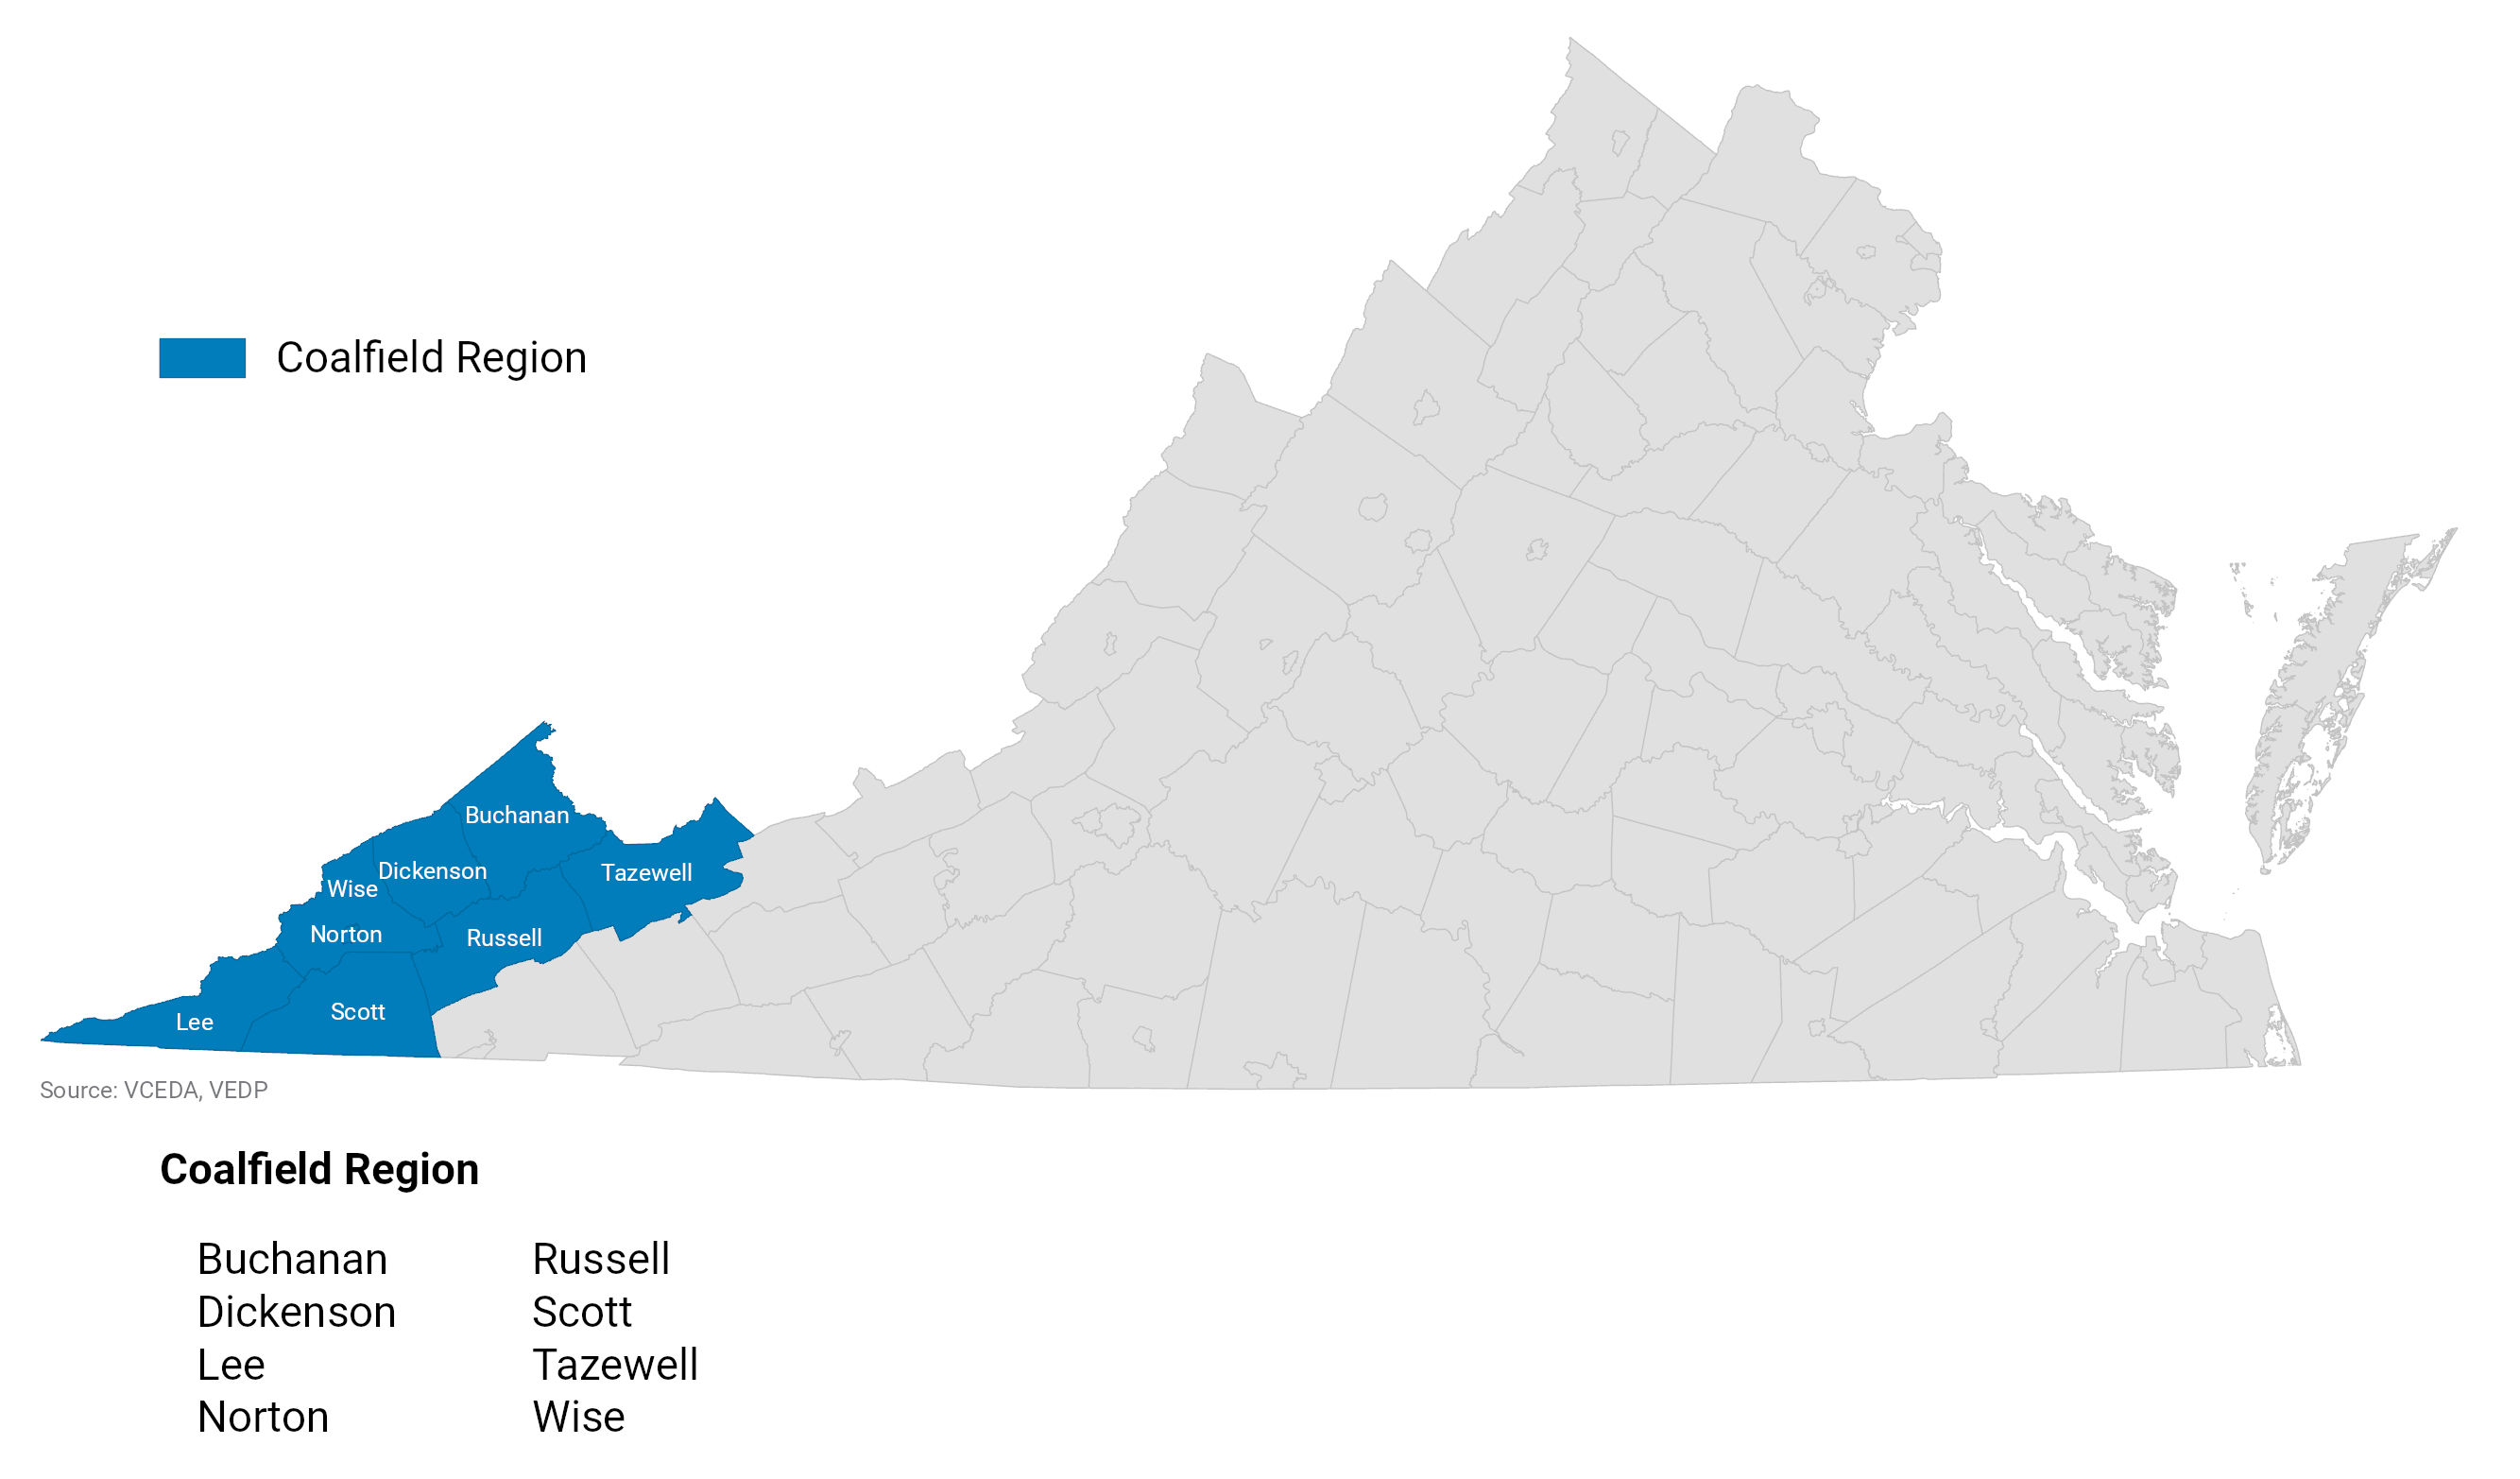 Coalfield Region